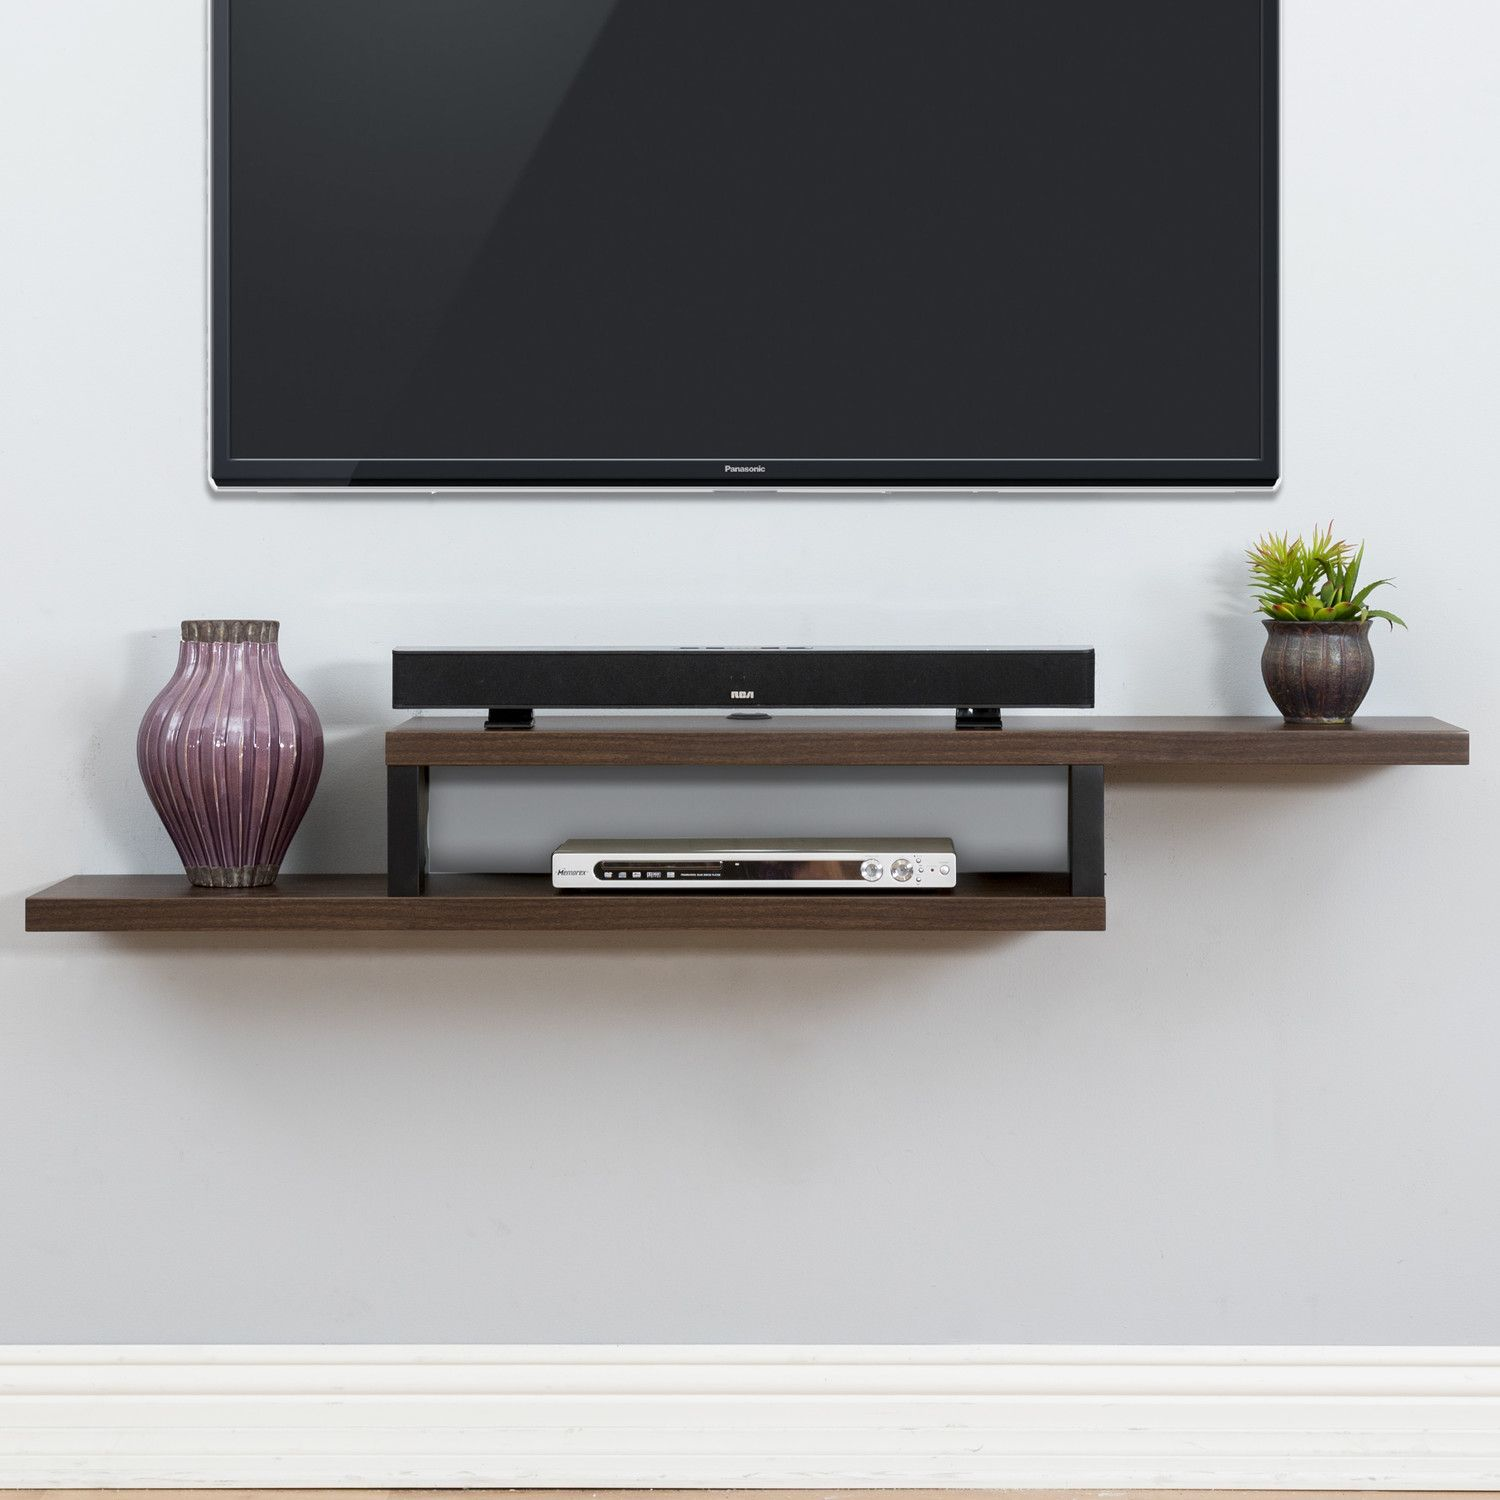 15 Modern Tv Wall Mount Ideas For Living Room Mounted Tv Wall  # Meuble Tv Design Angle